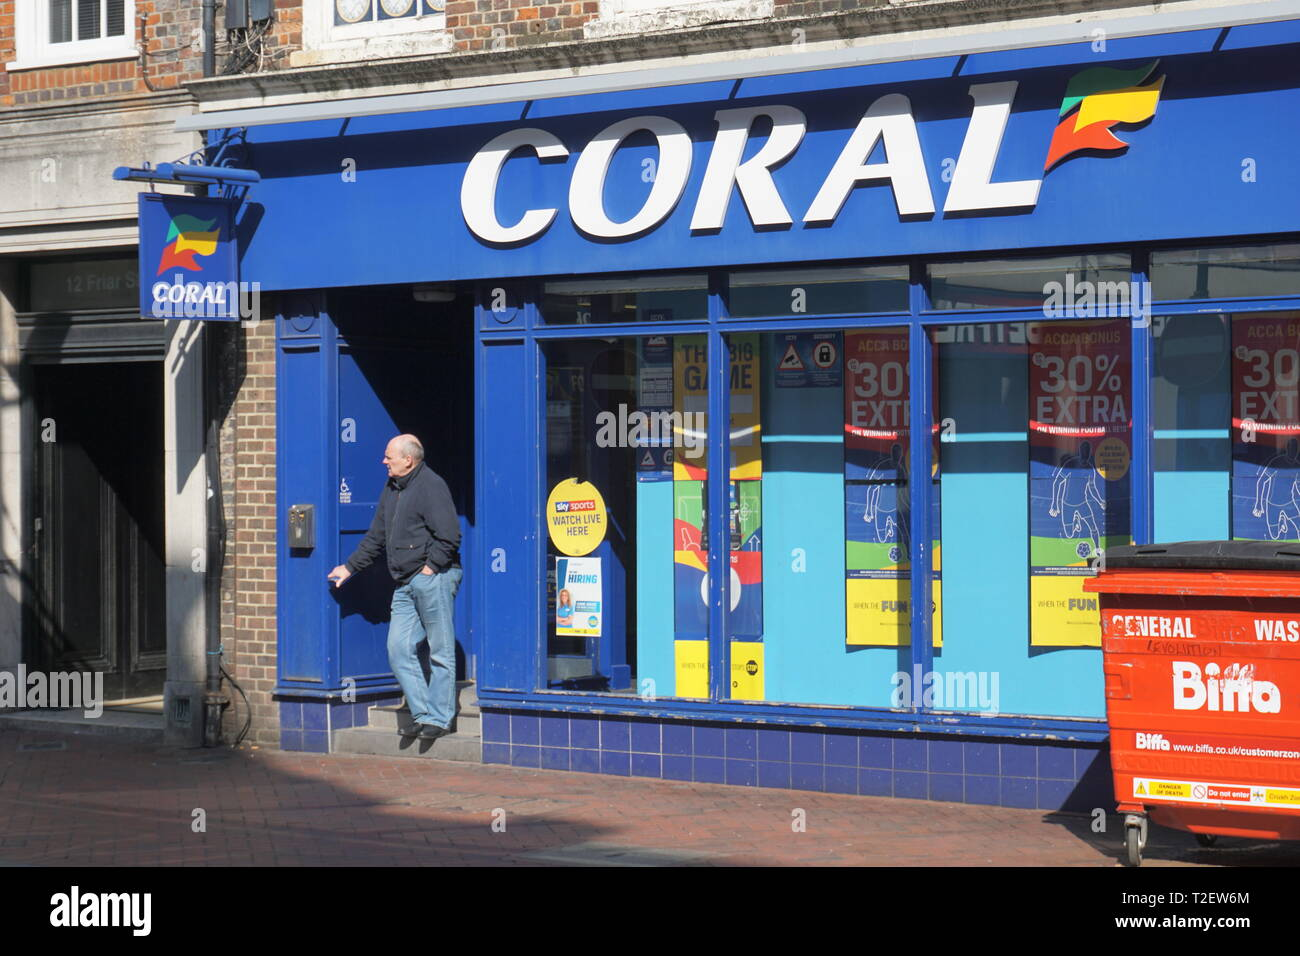 coral betting shop reading